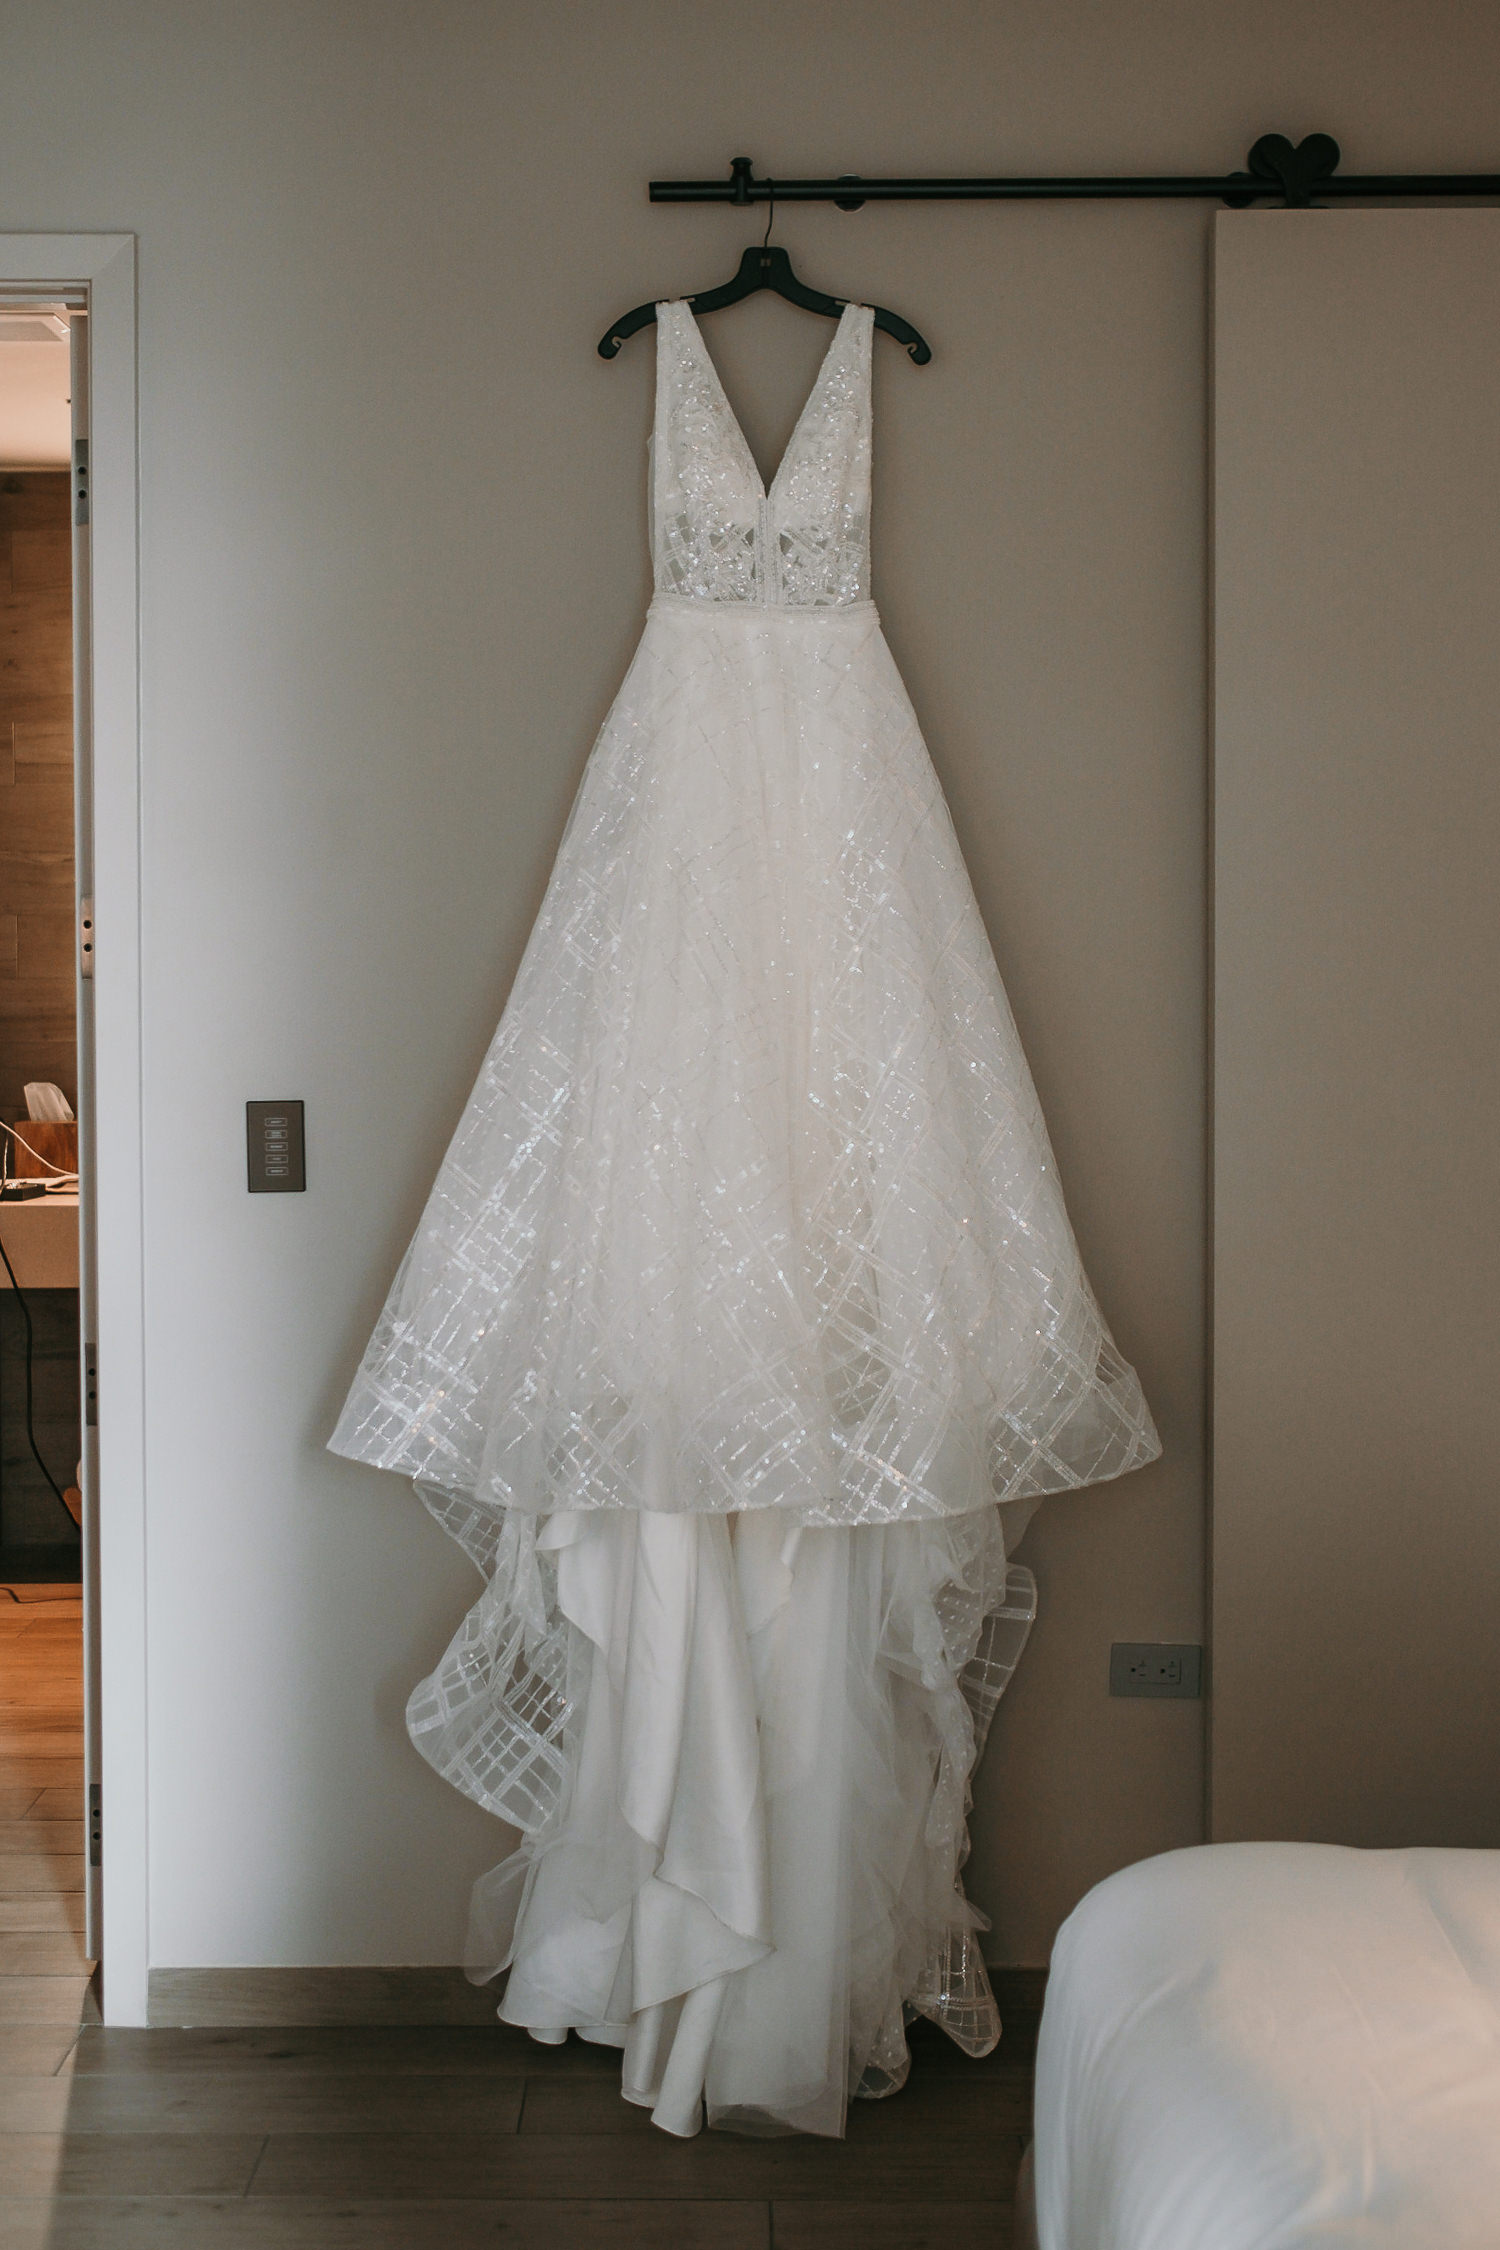 brides dress hanging inside east hotel